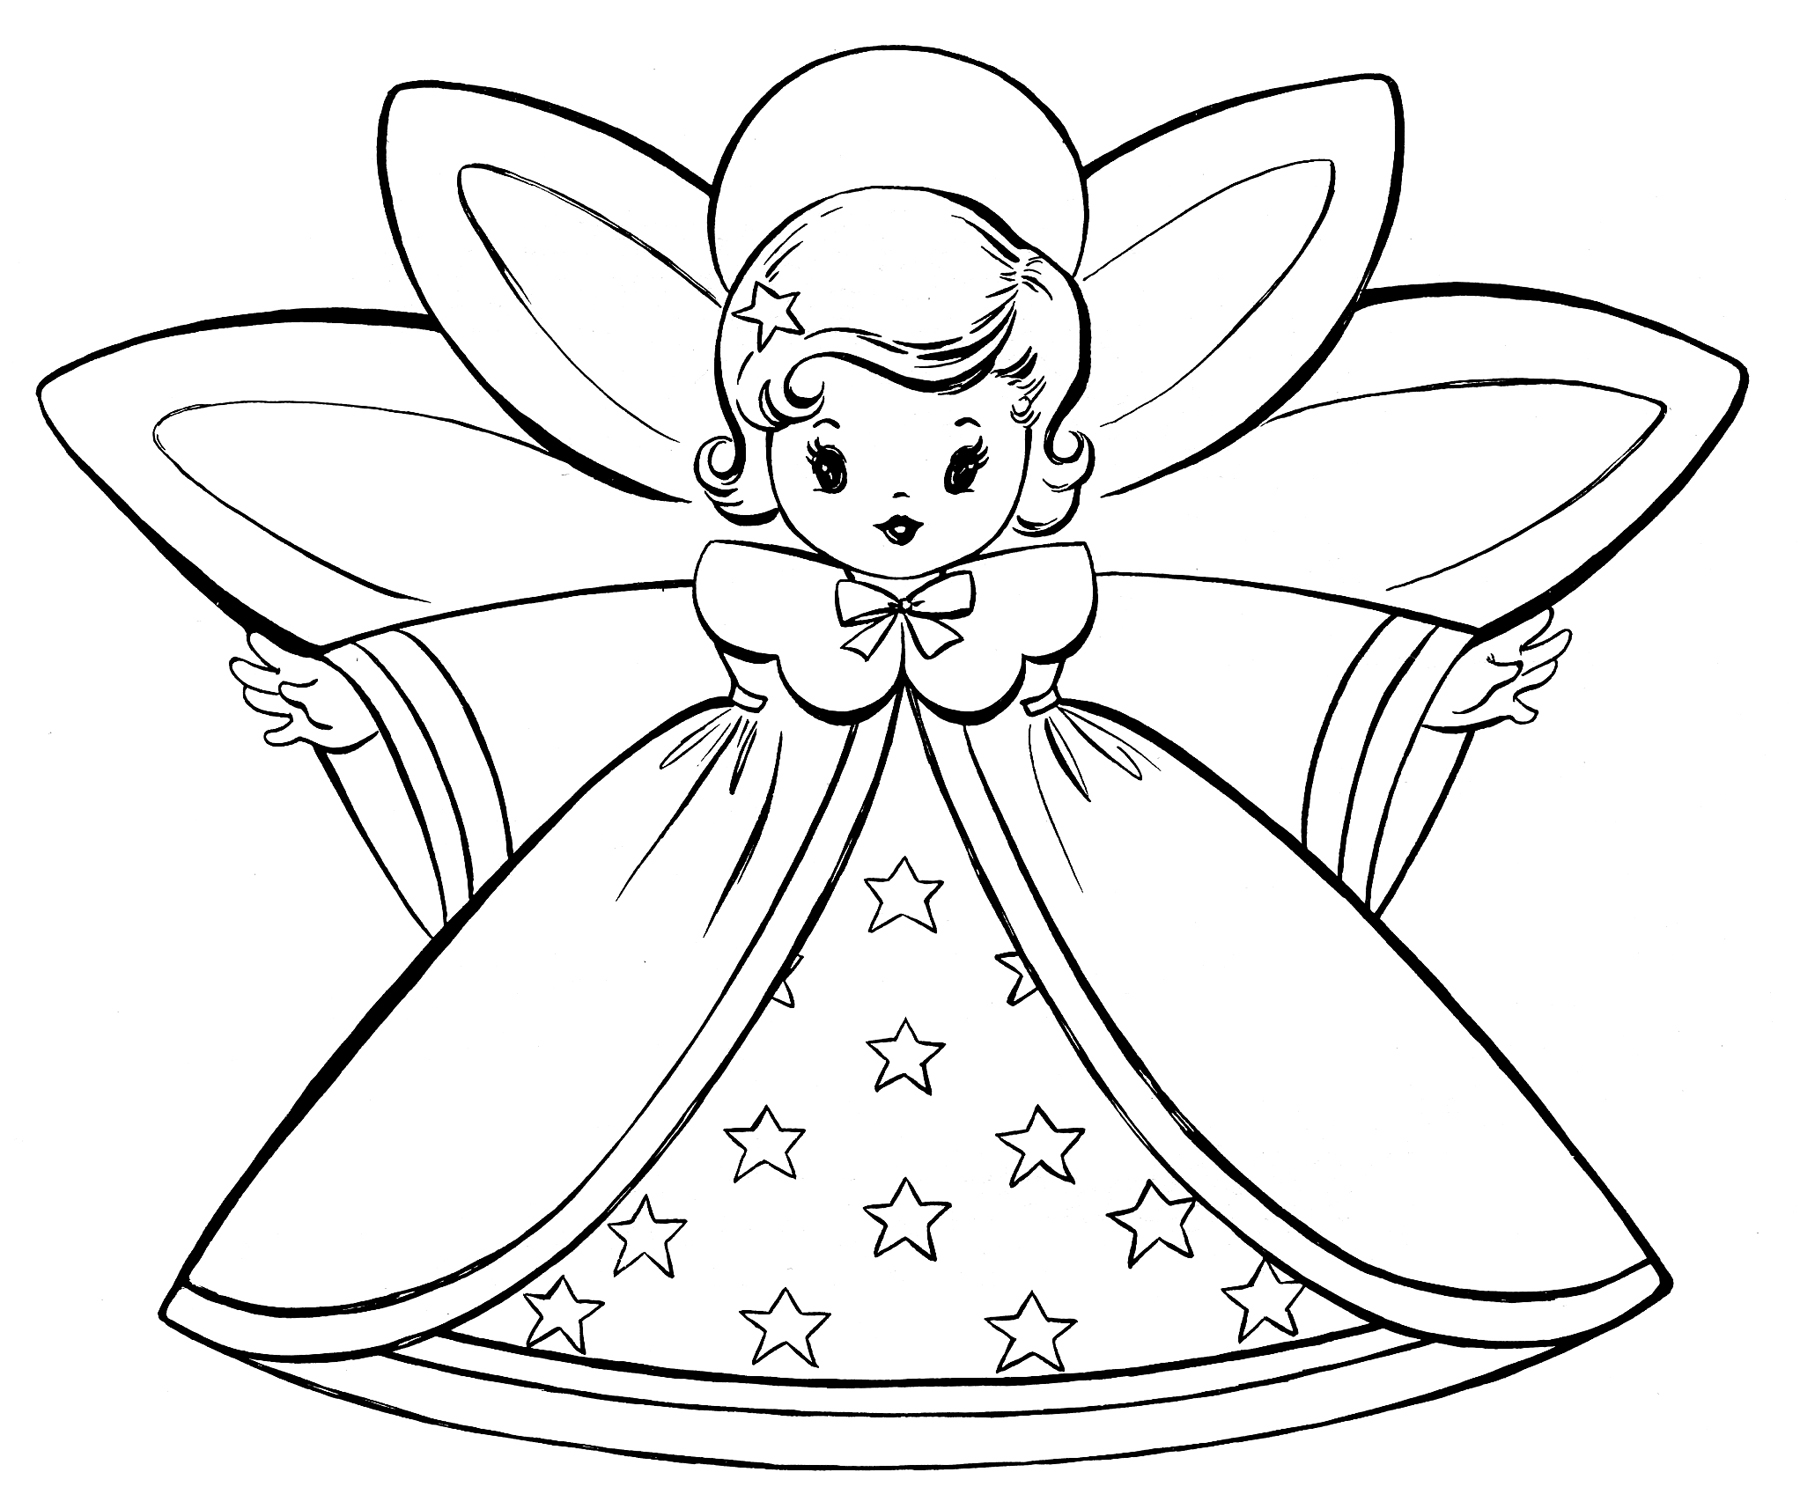 Coloring pages printable free christmas - Free Christmas Coloring Pages